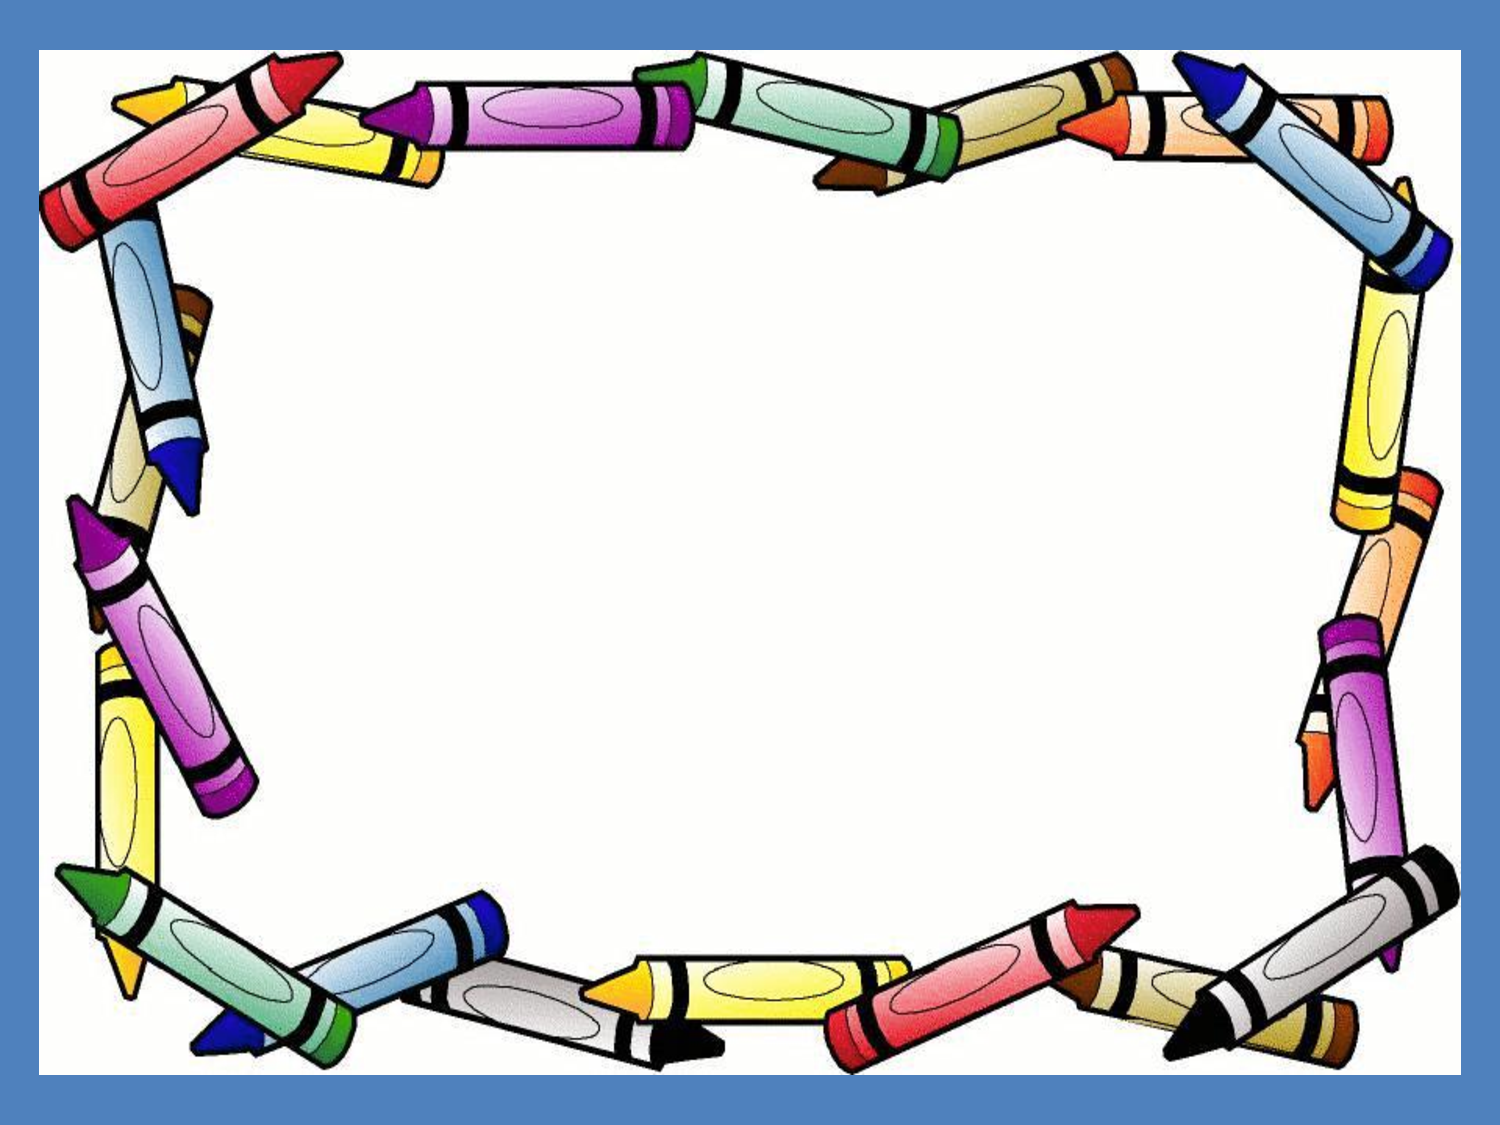 Crayon Border Powerpoint Background Template.